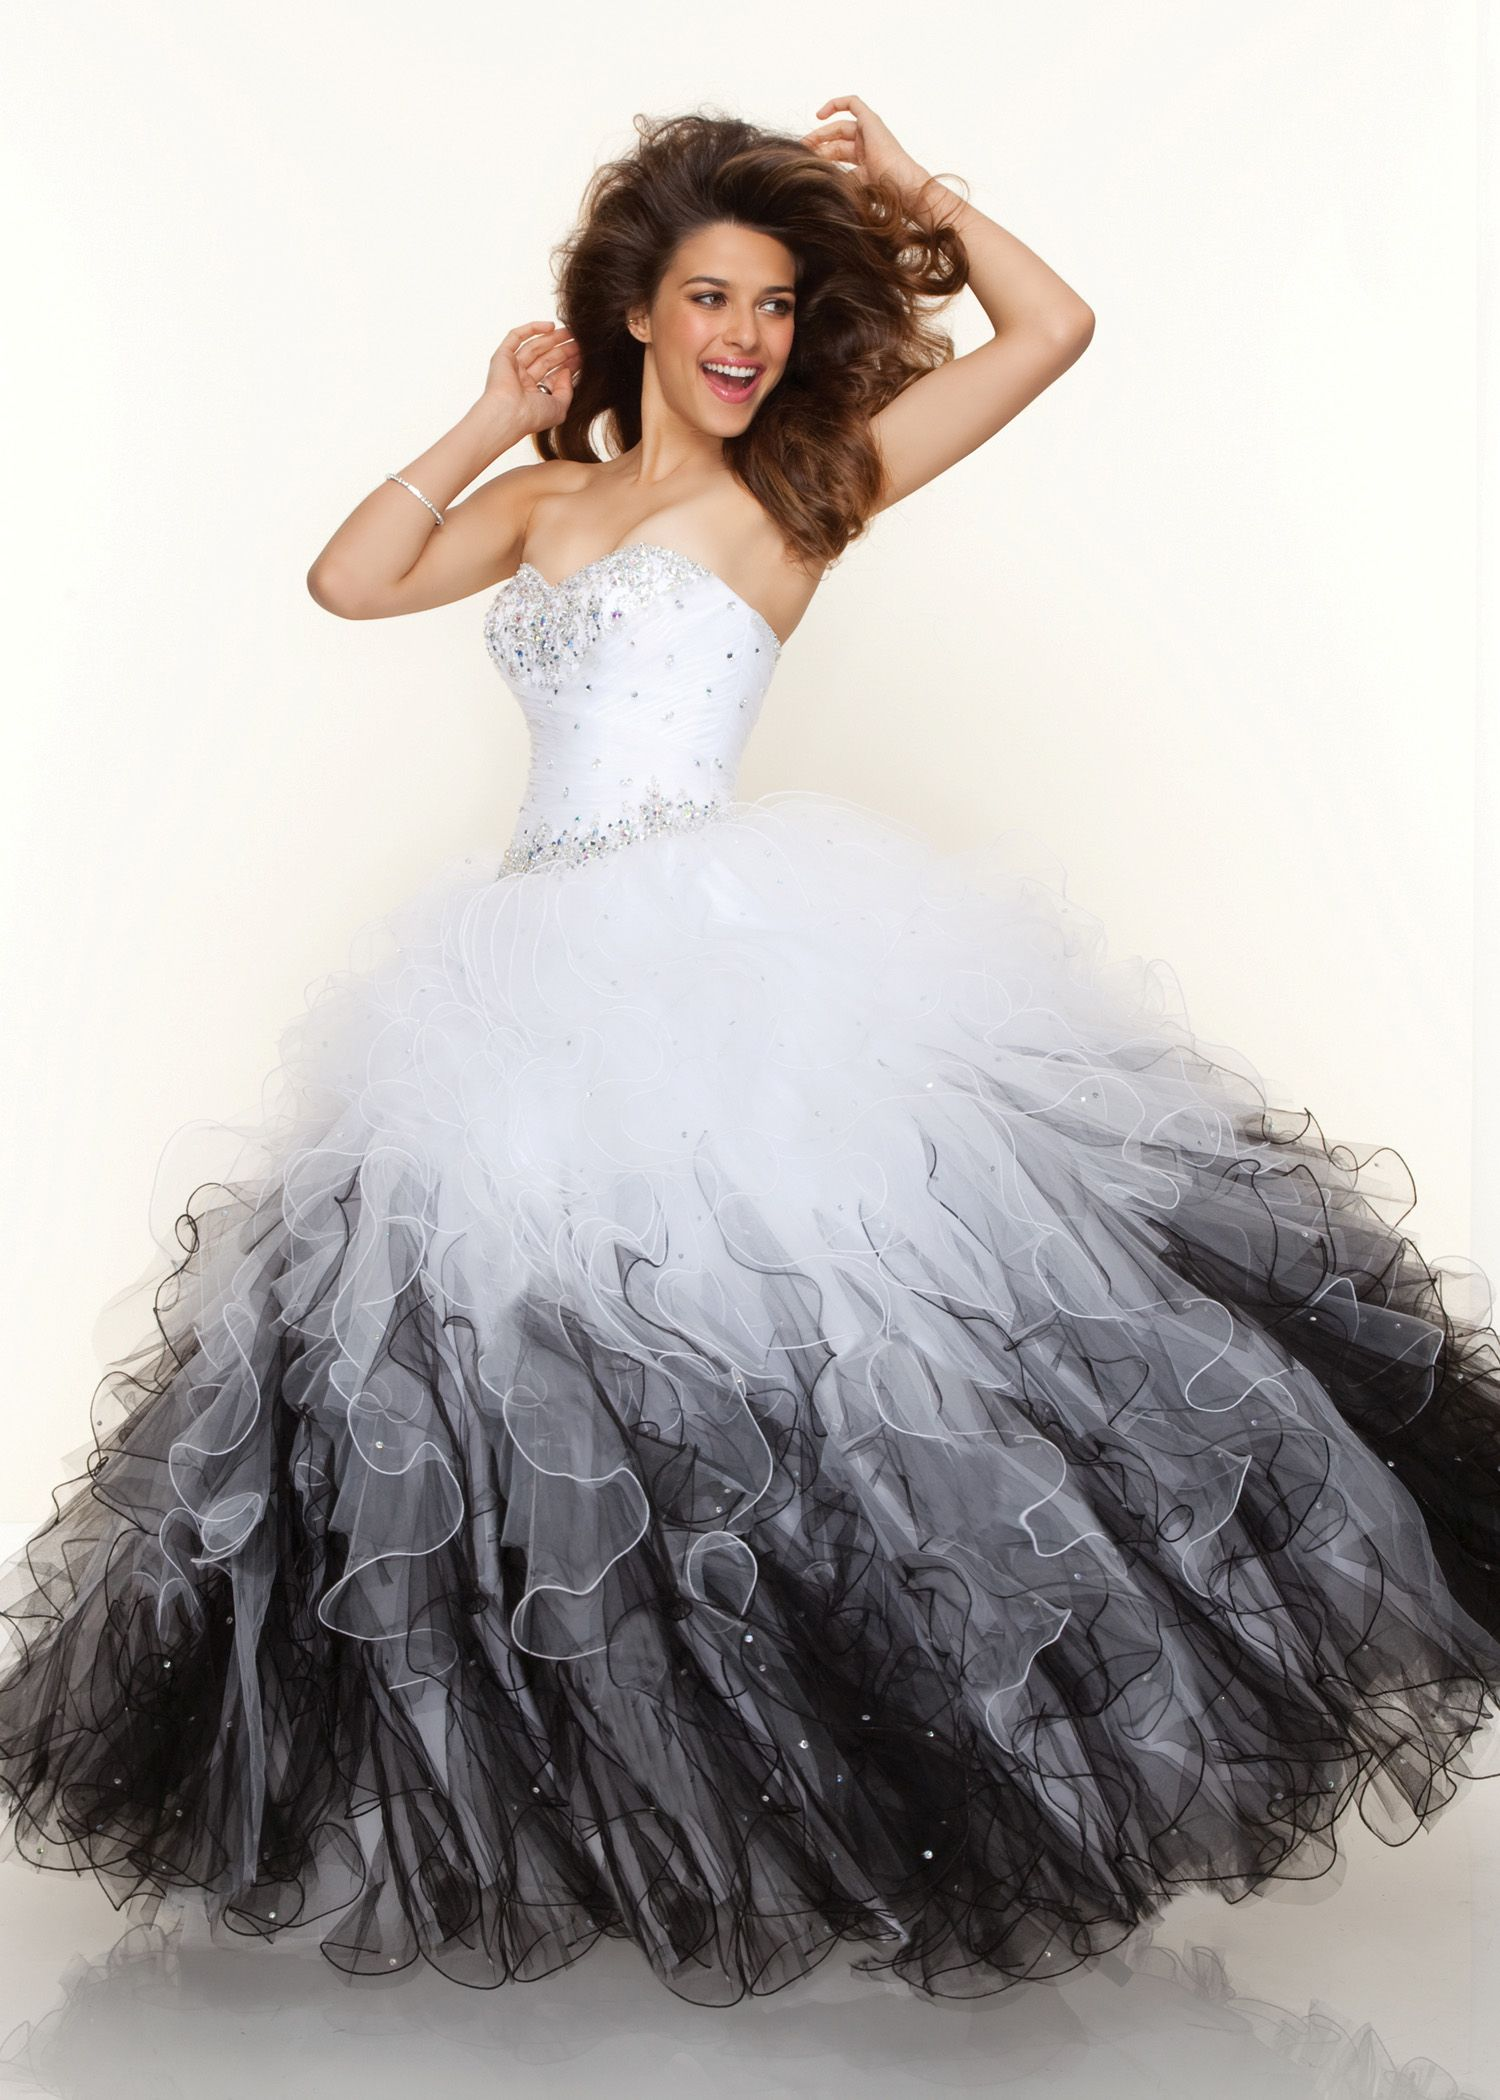 New 2013 paparazzi by mori lee 91001 white and black tulle ball strapless prom dress black and white mori lee top 10 black and white wedding dresses inspiration ombrellifo Image collections